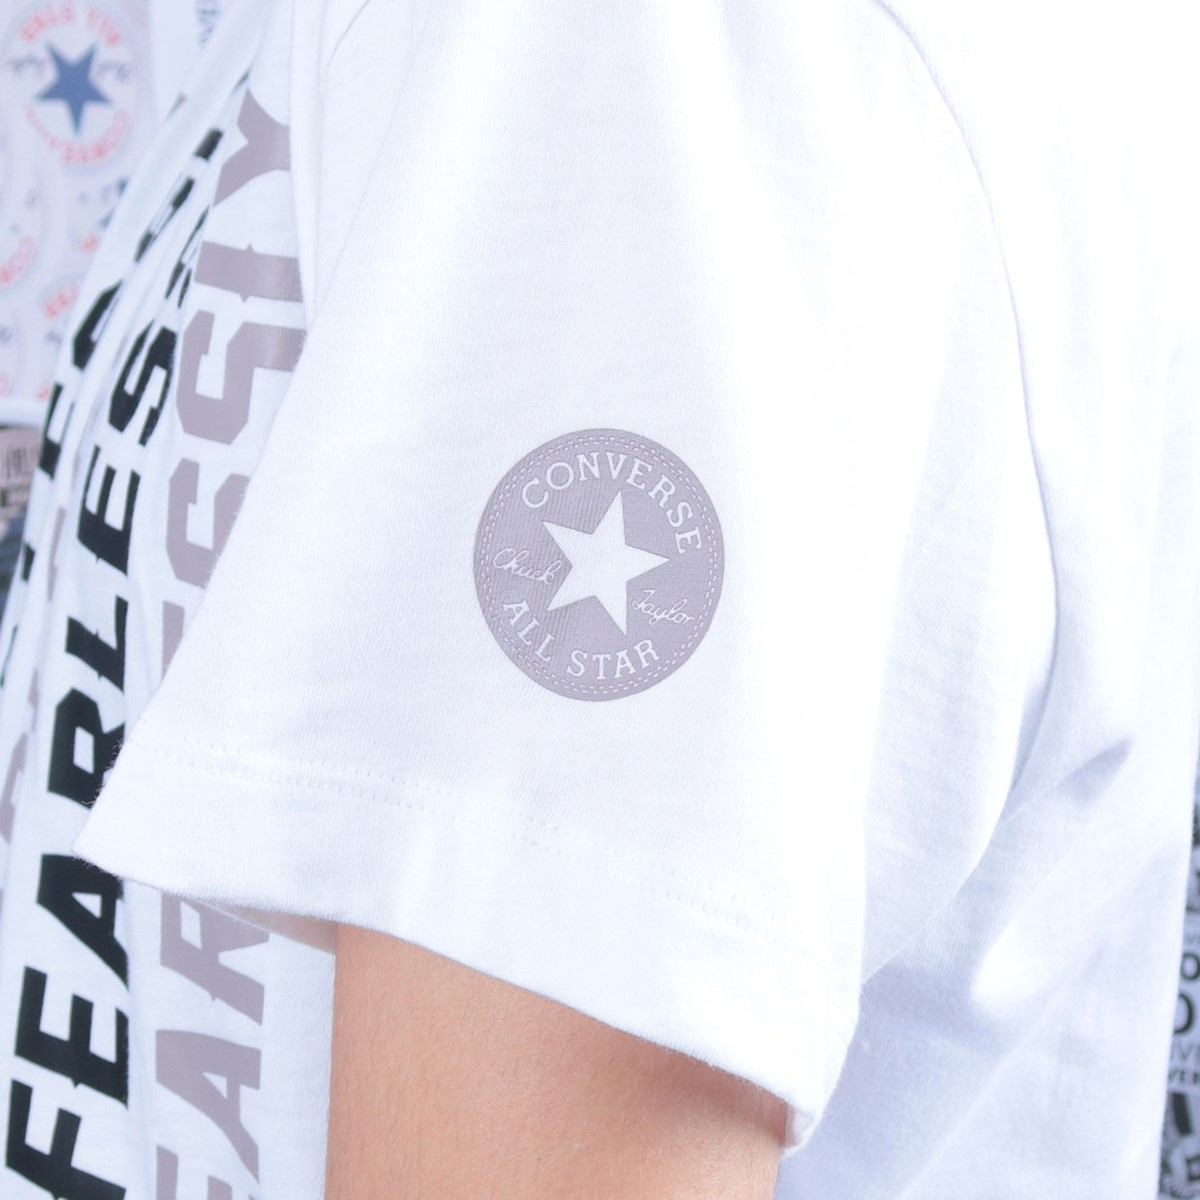 Camiseta Converse Love The Progress 2.0 Relaxed Tee White 10019658-A02